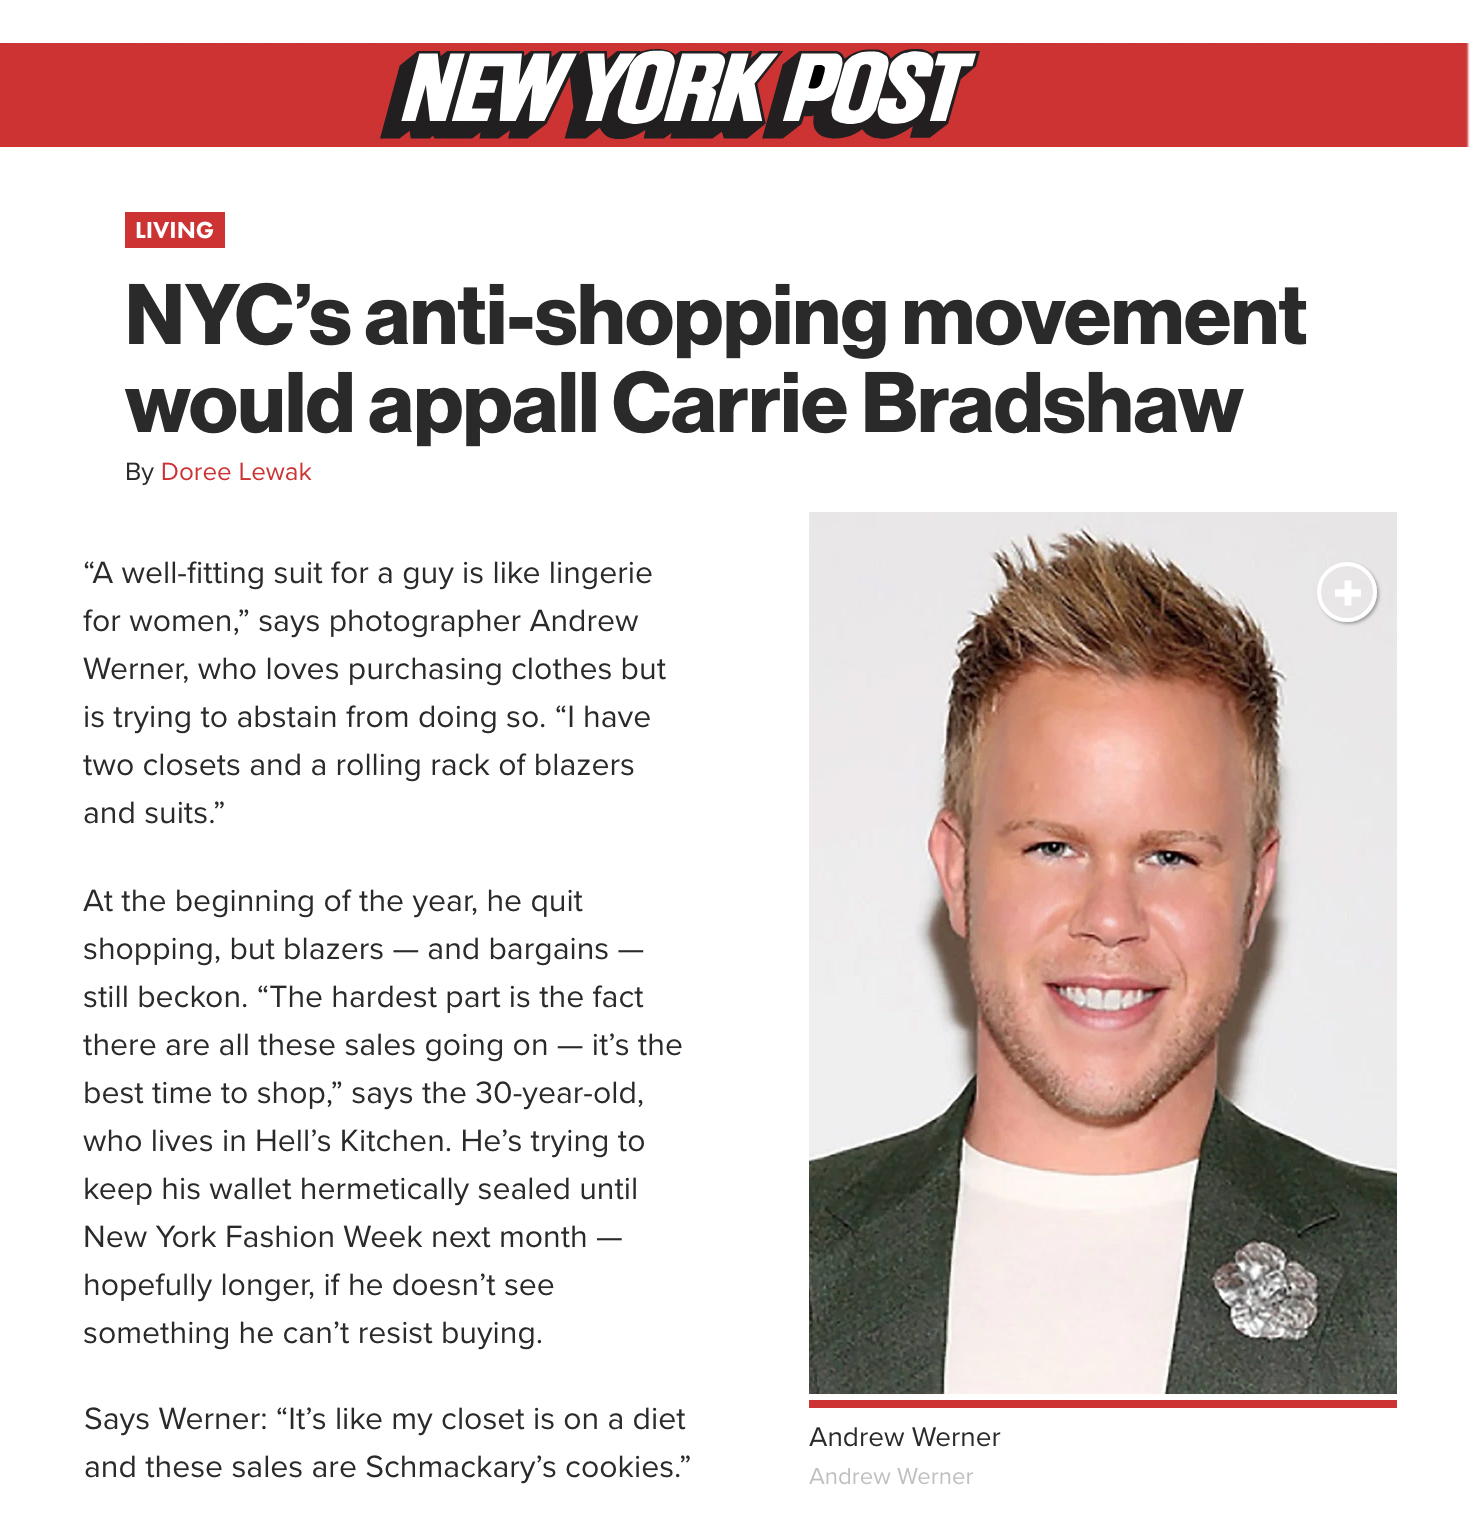 NEW YORK POST - NYC's anti-shopping movement would appall Carrie Bradshaw